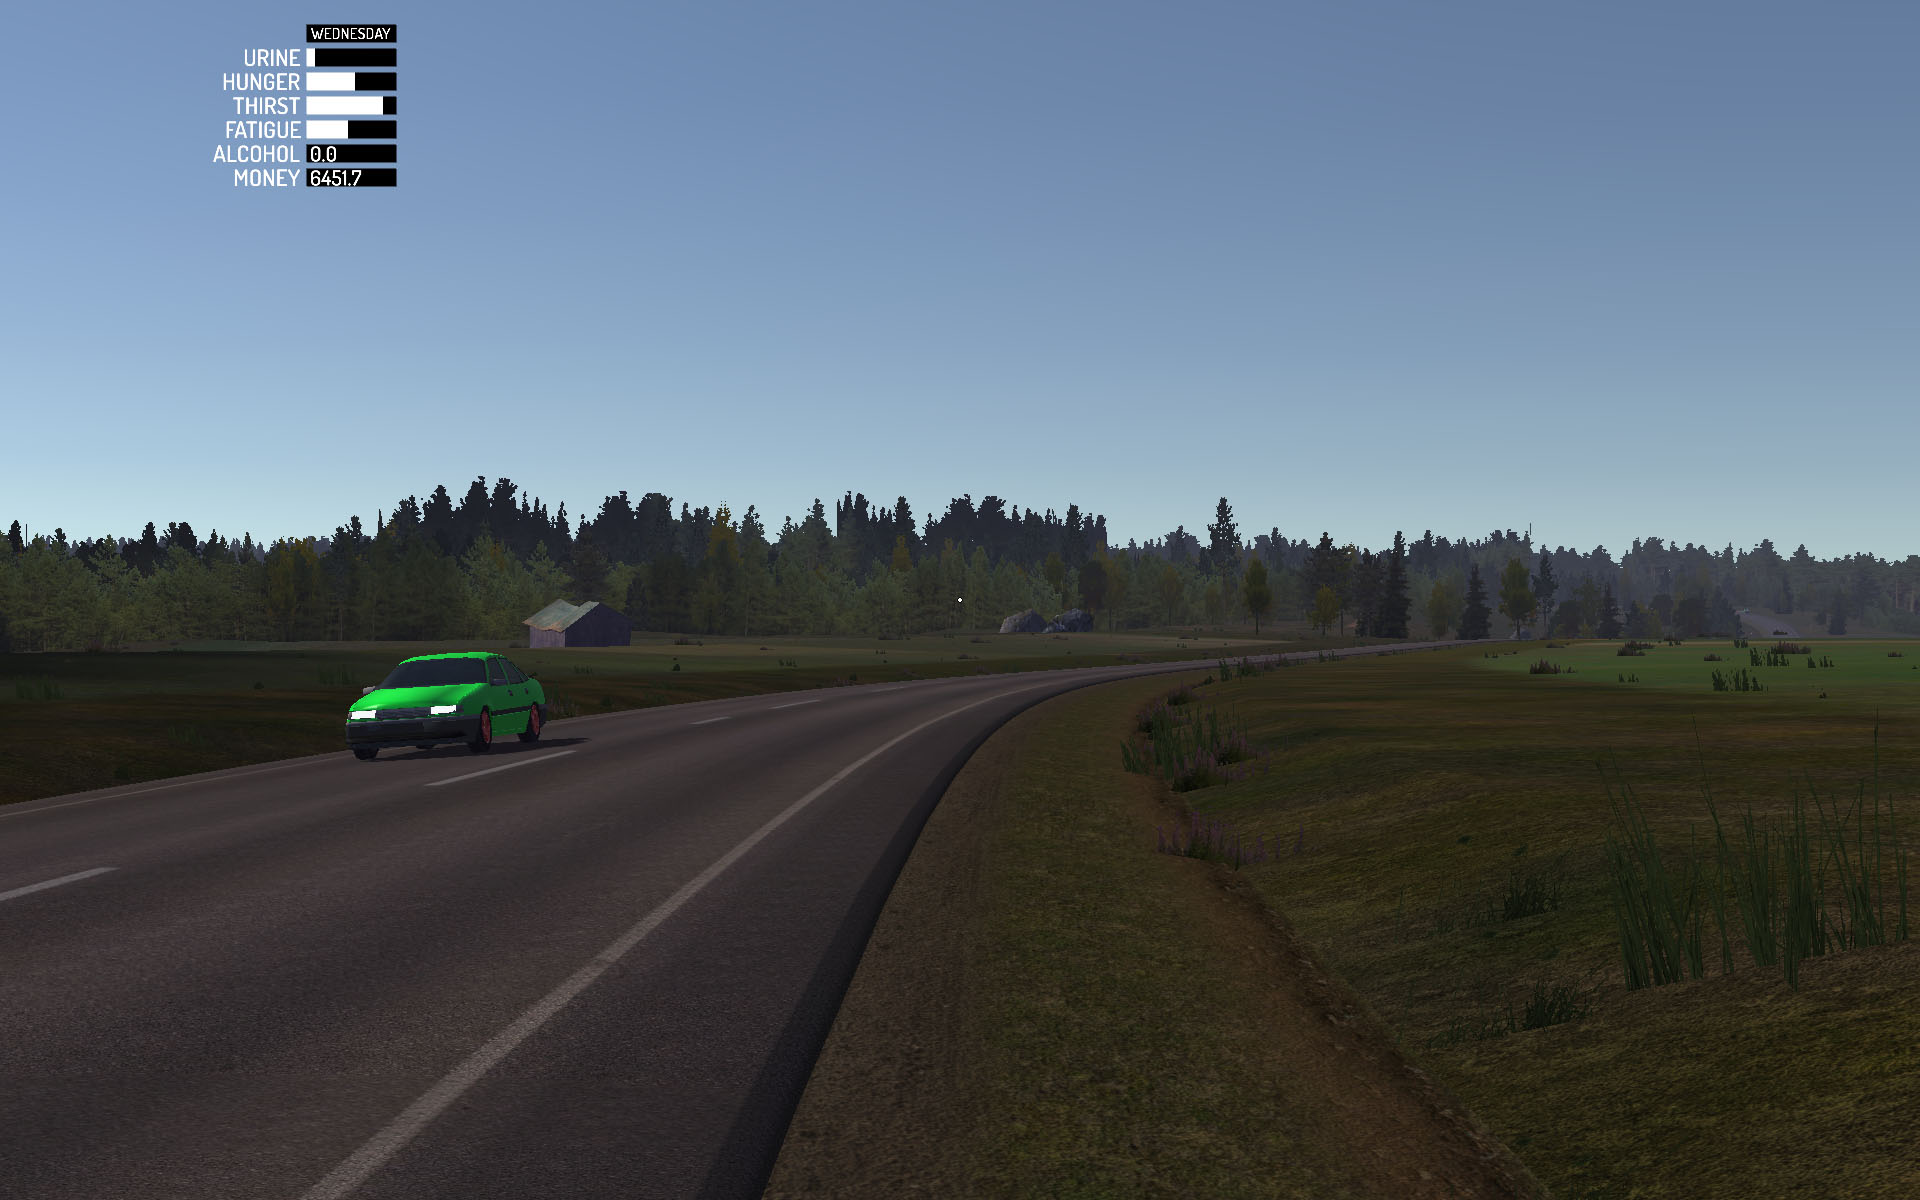 NPC vehicle in the gorgeous countryside landscape of My Summer Car